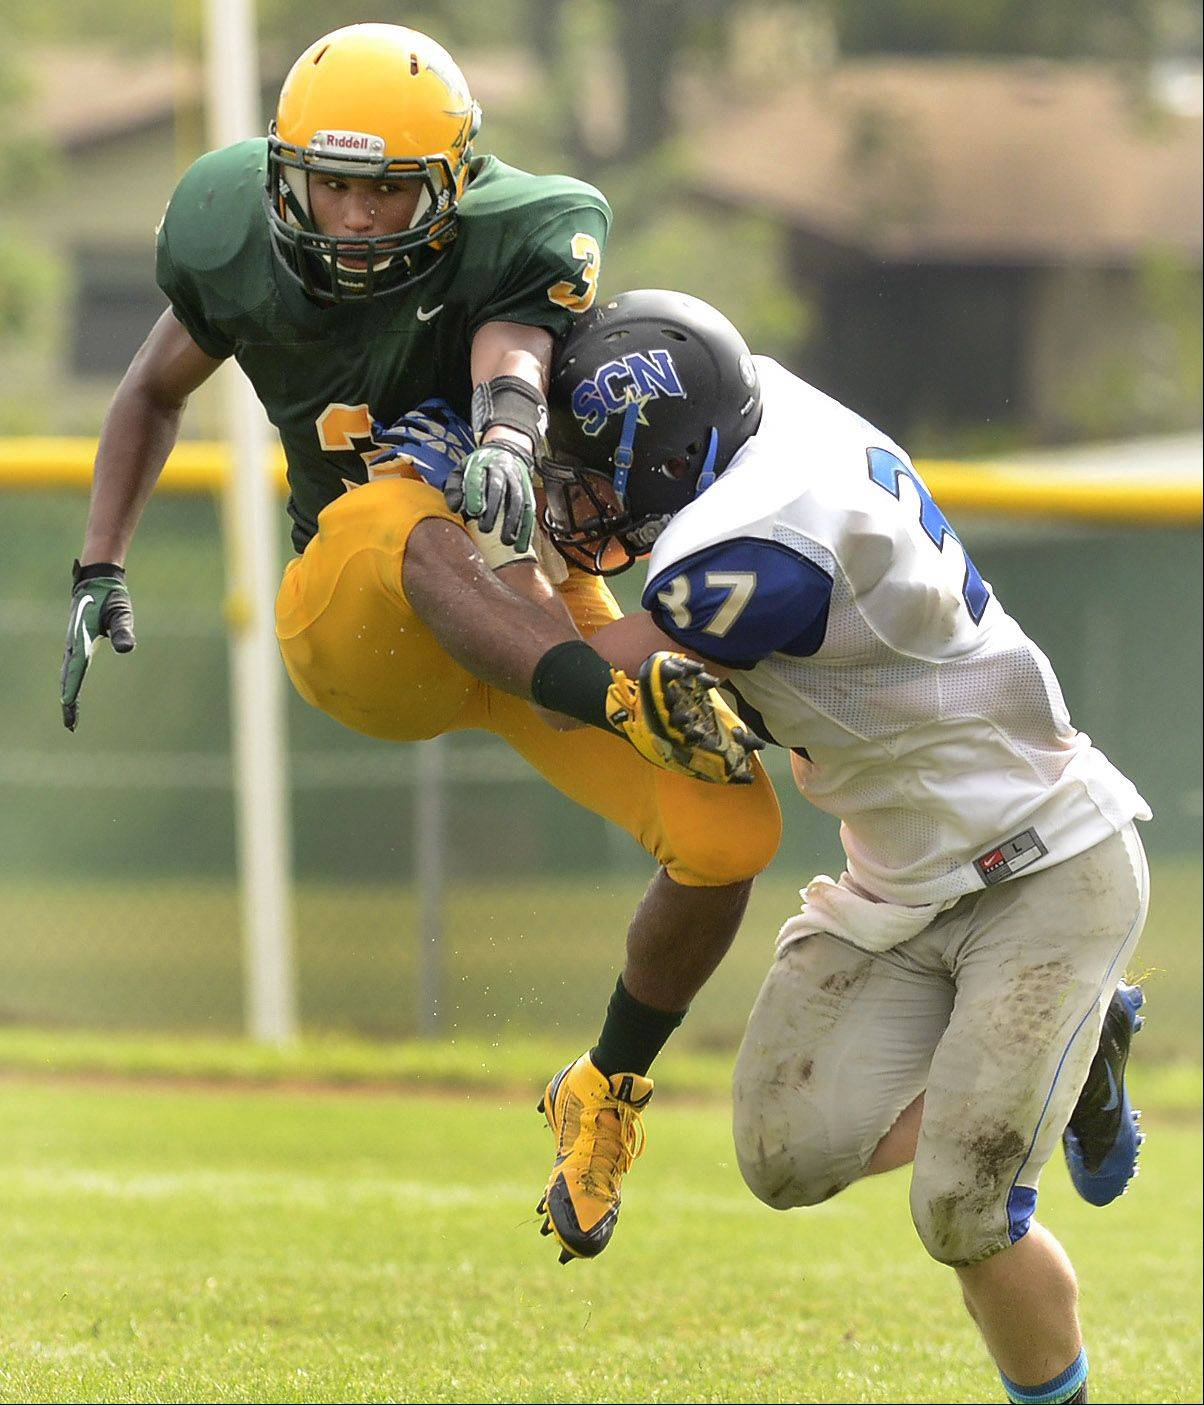 Travon Royal just gets a kick away that is nearly blocked by Reece Conroyd of St. Charles North.